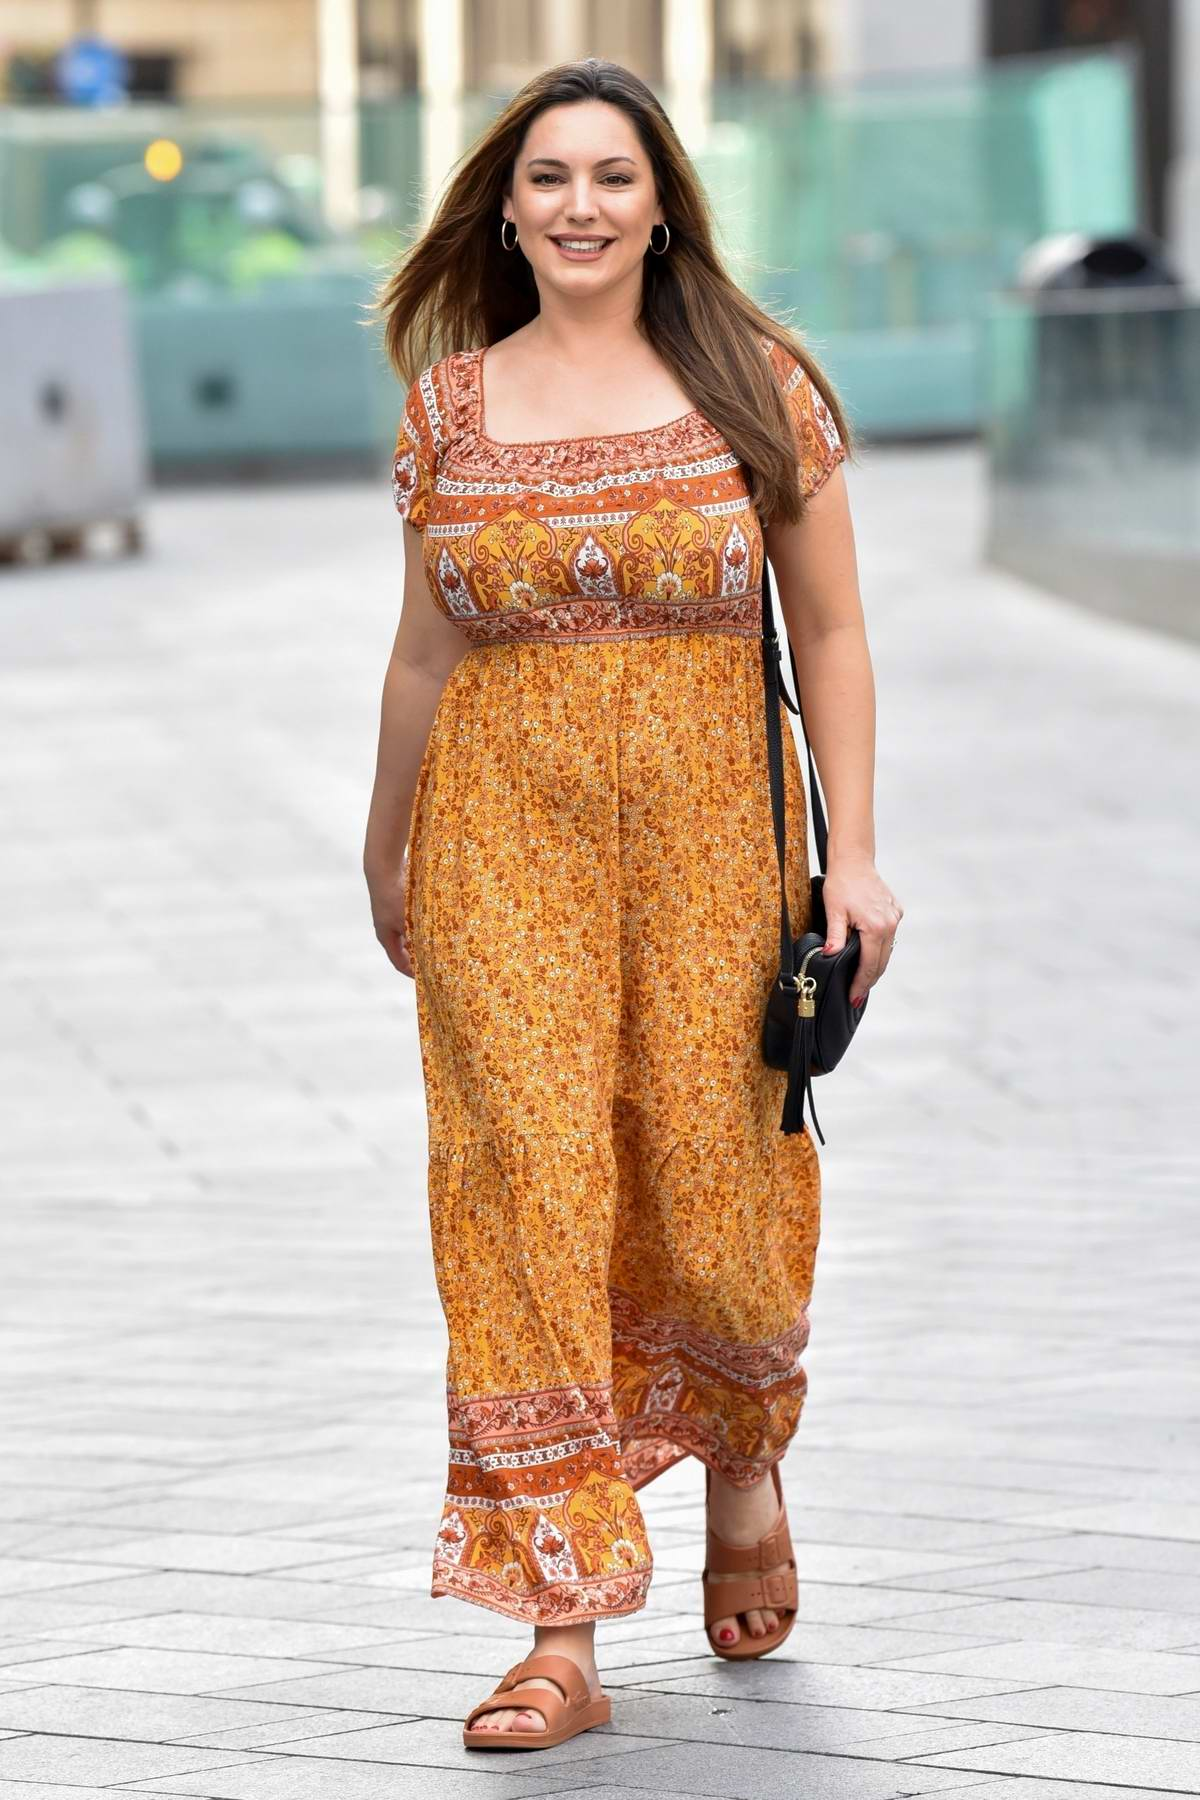 Kelly Brook looks lovely in a floral print summer dress while arriving at the Global Radio studios in London, UK